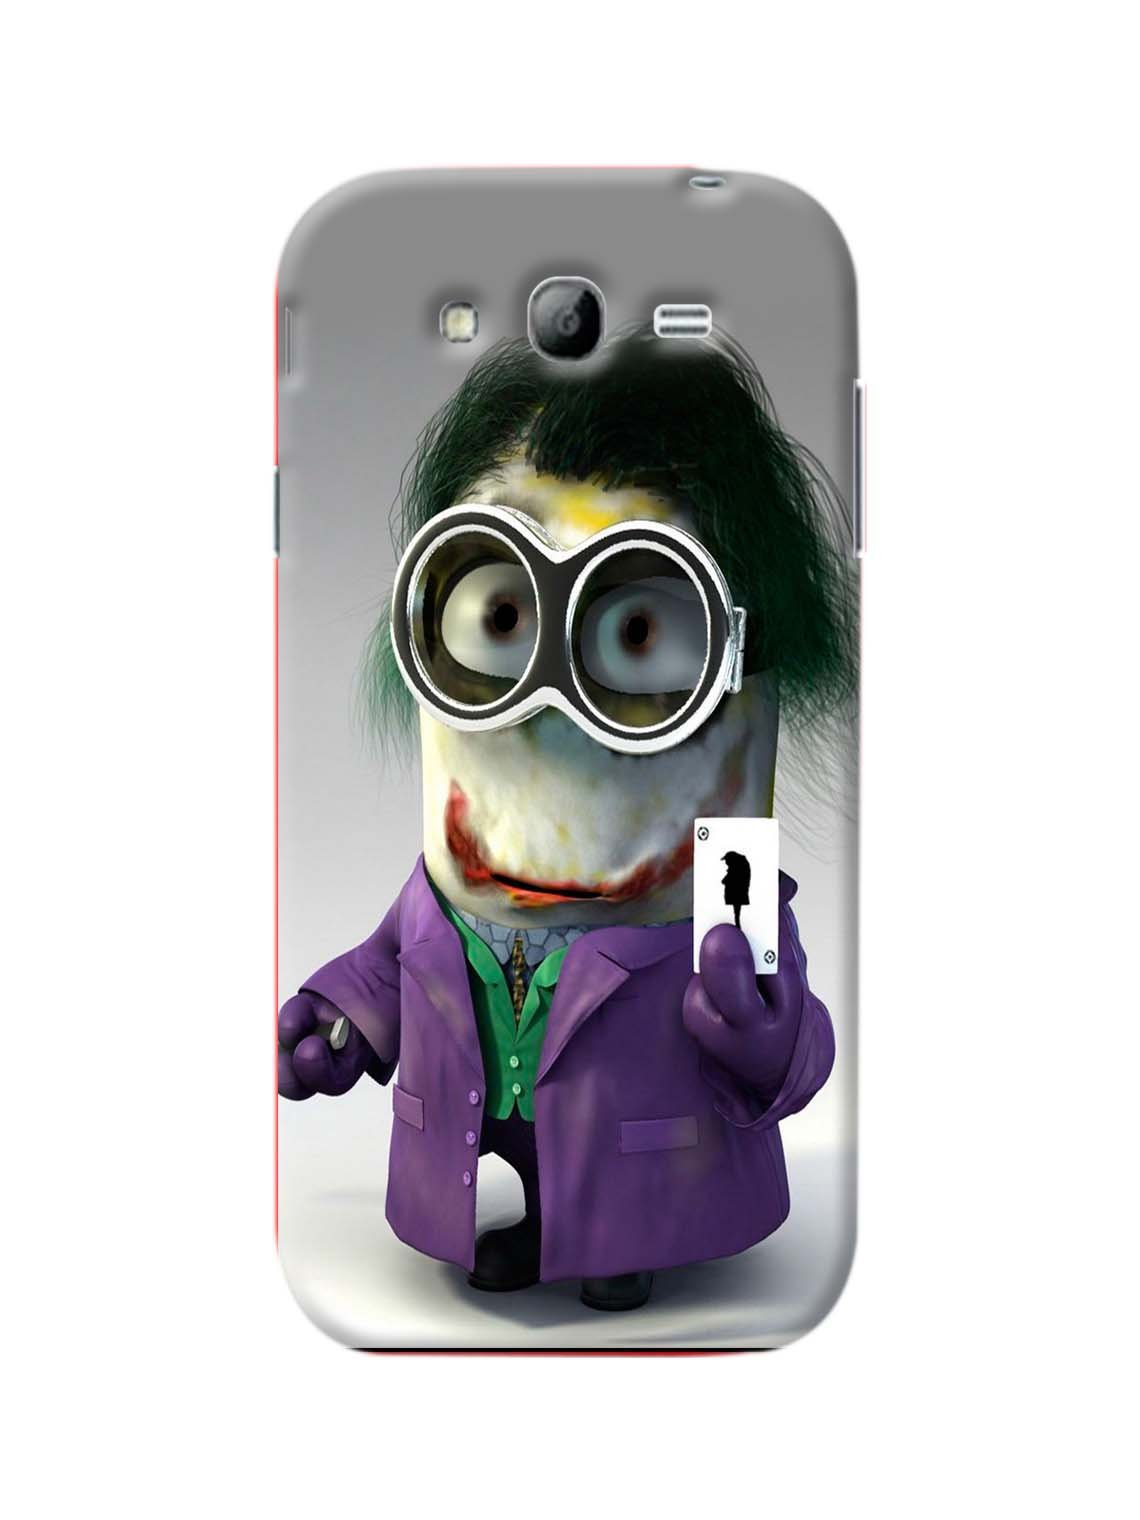 finest selection bde05 632f3 Joker Minion Printed Mobile Case For GALAXY GRAND DUOS I9082